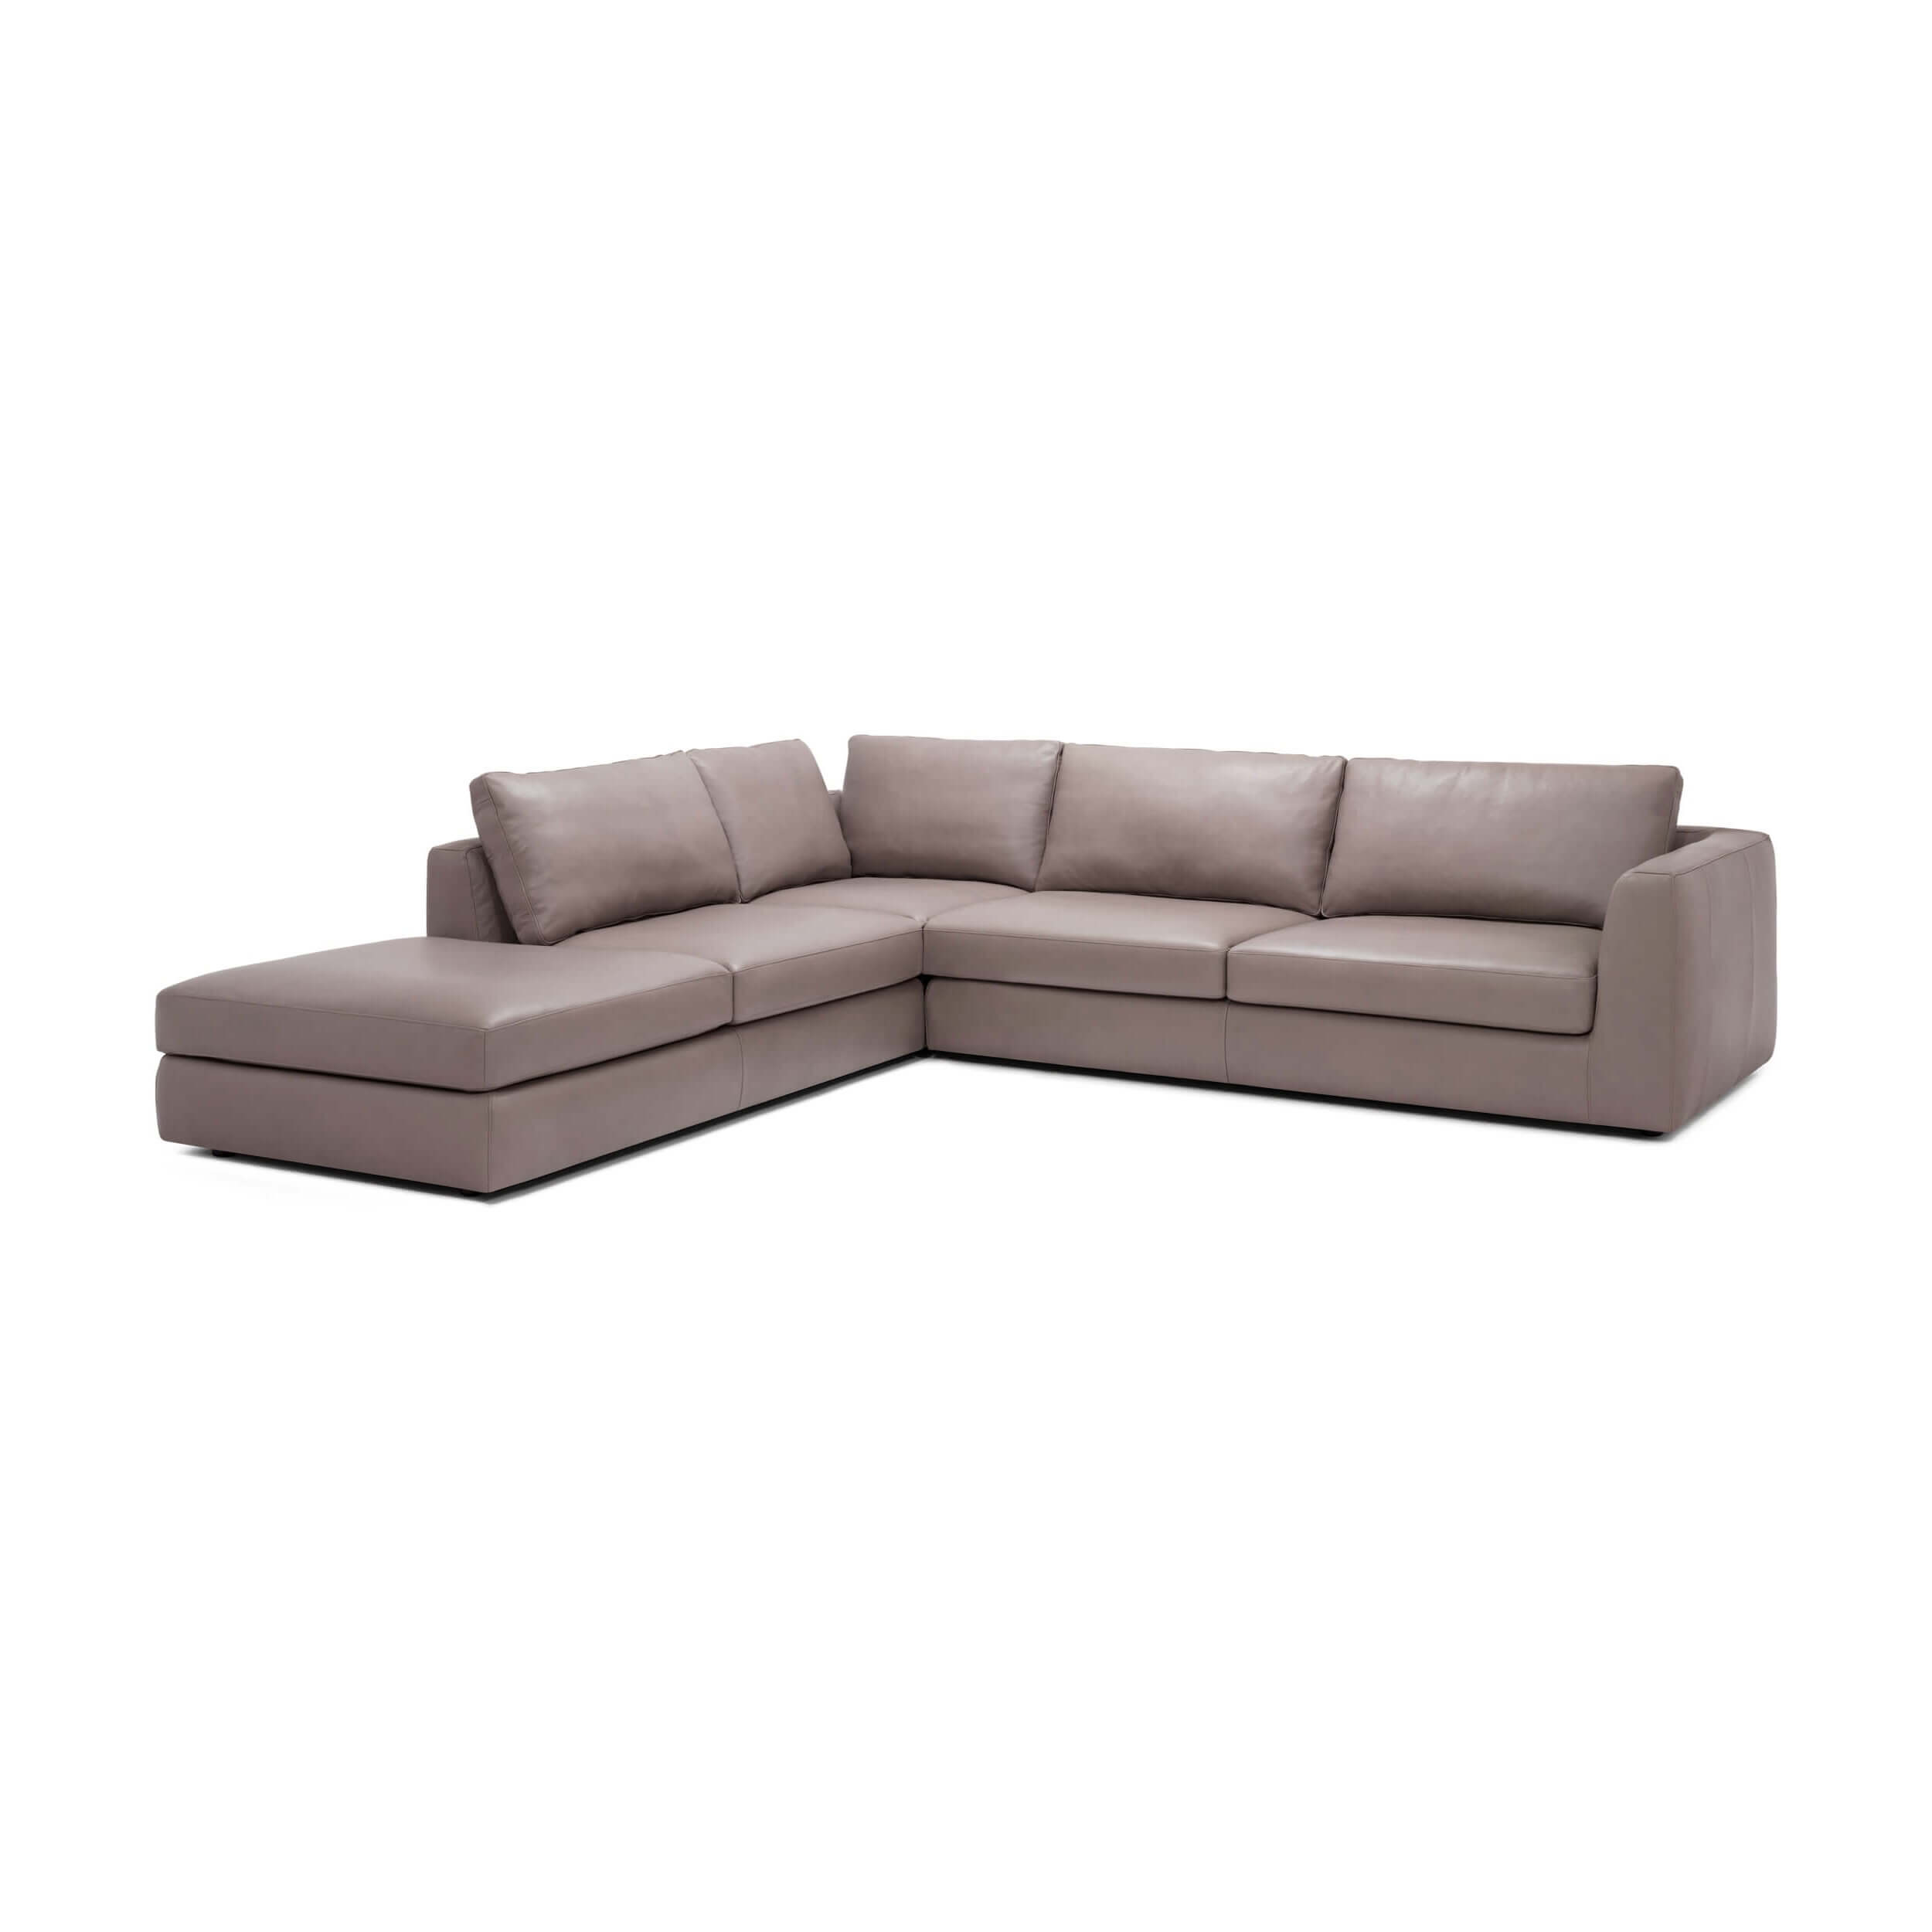 Cello 3-Piece Sectional Sofa with Backless Chaise - Leather